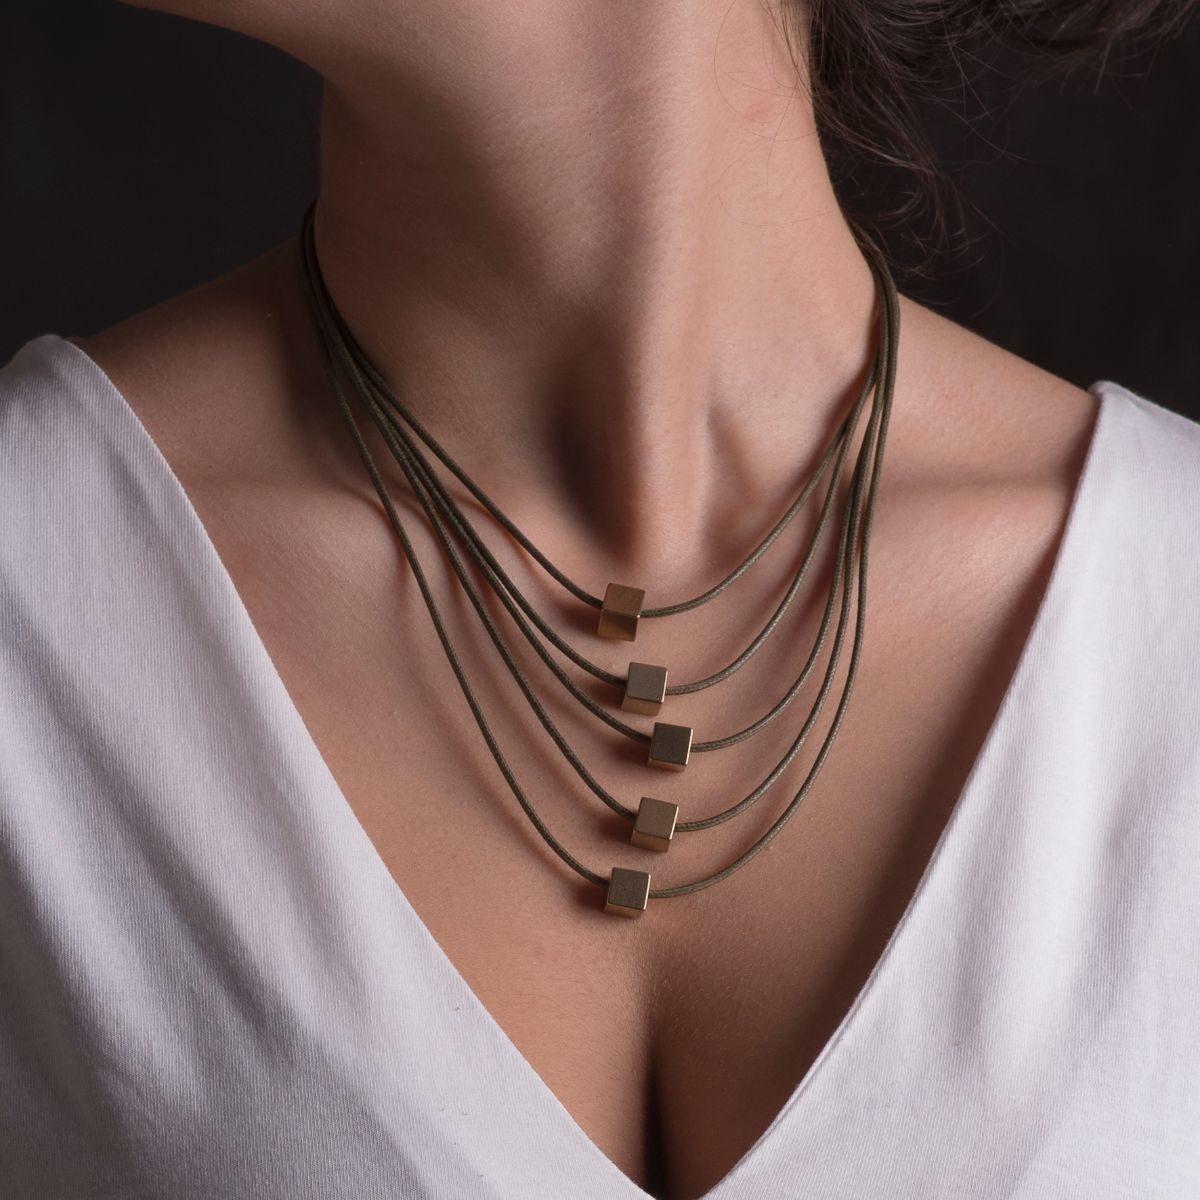 Las Vegas short necklace formed by five cotton strips at different heights in which a small cube finished in gold hangs on each of them